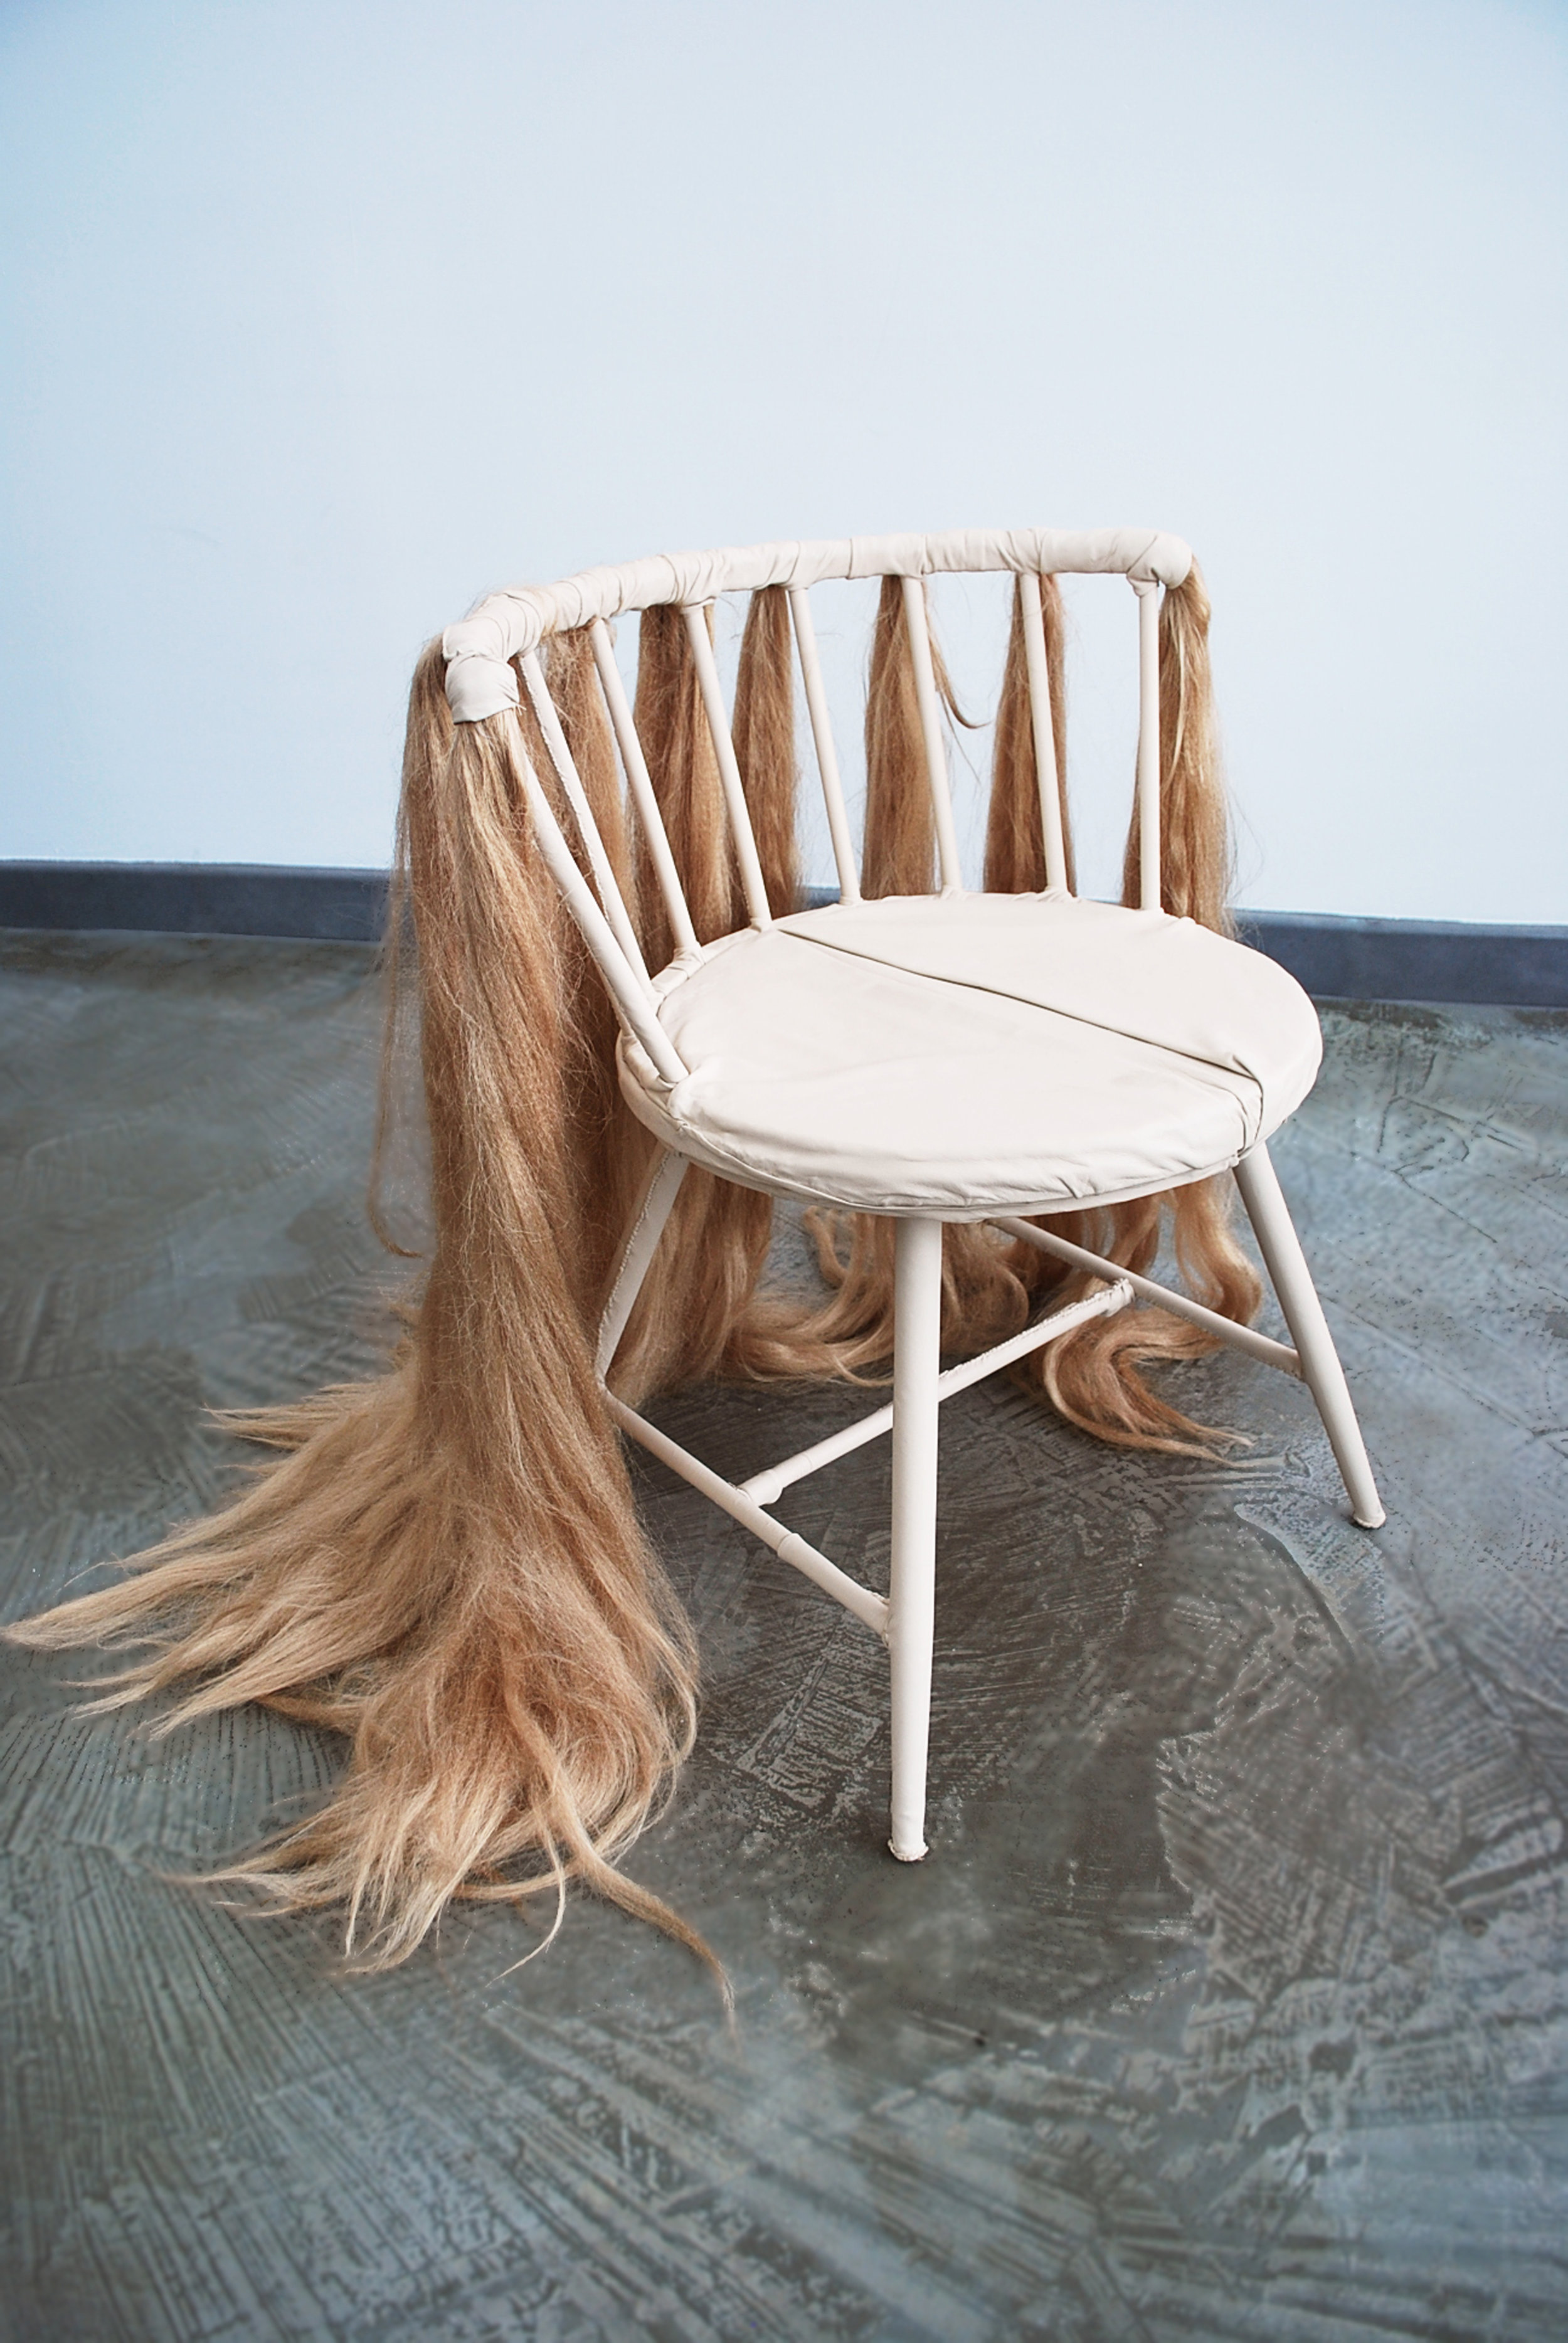 Bernadette_Despujols_sad_chair_2016.jpg